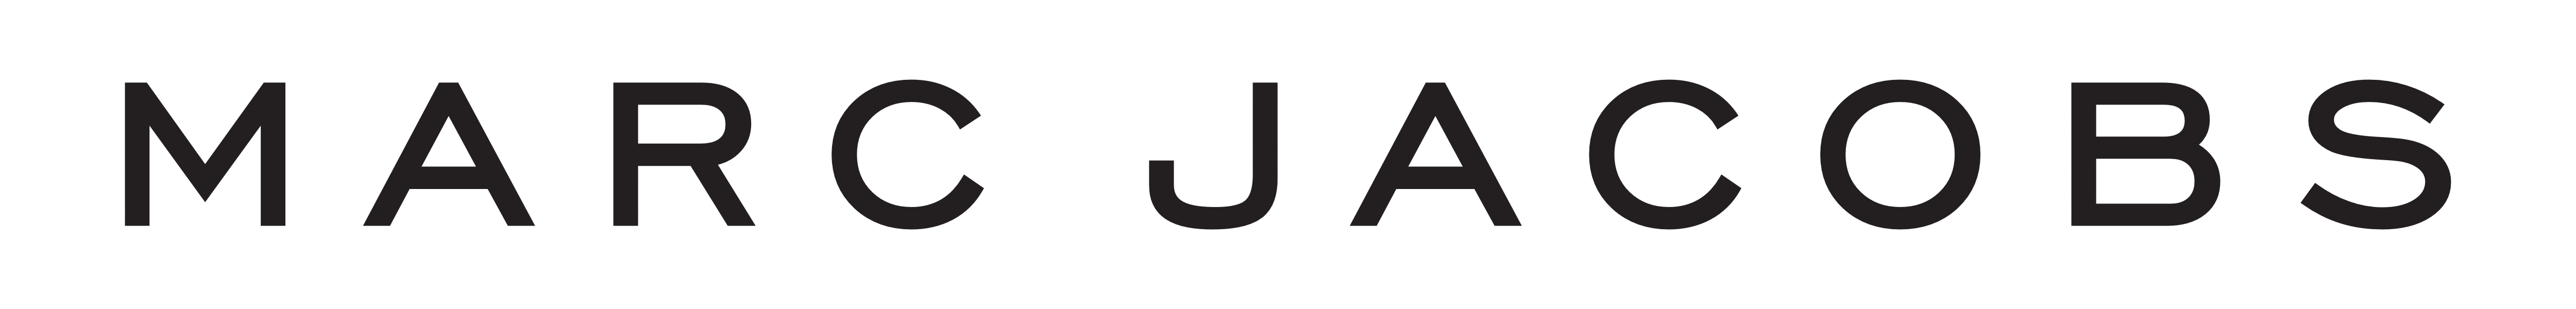 marc_jacobs_logo_wordmark